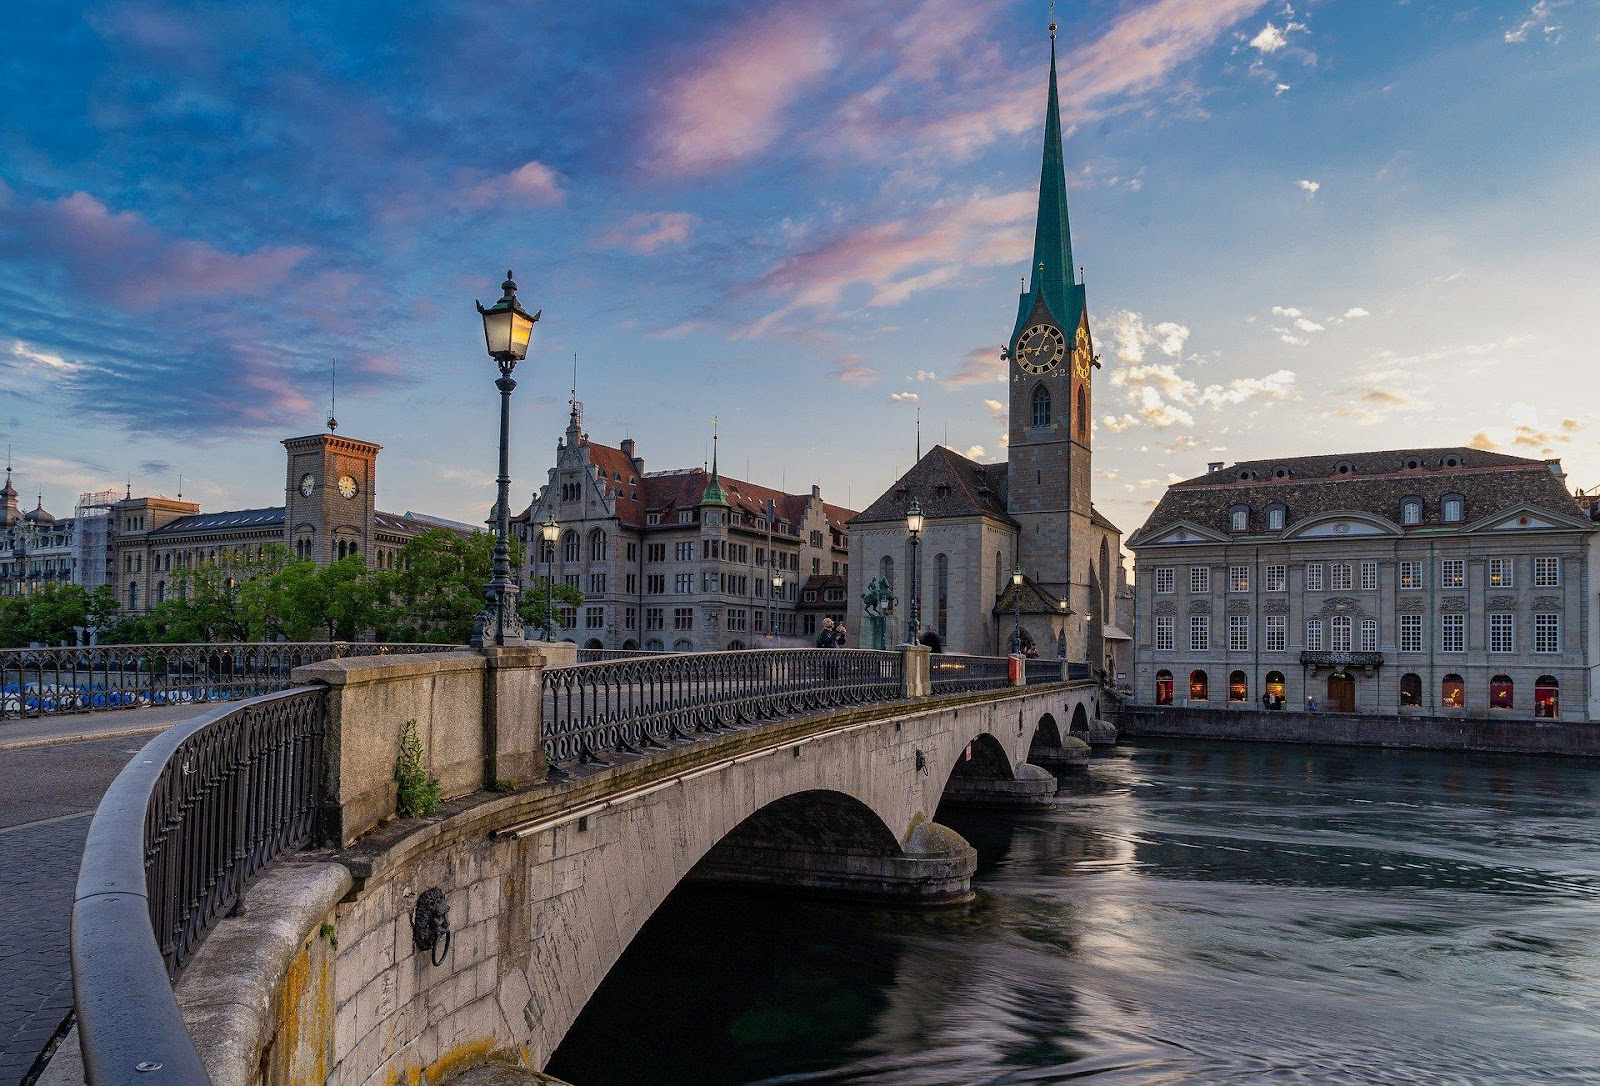 zurich bridge over river into traditional district old town medieval buildings and historical tall church during sunset